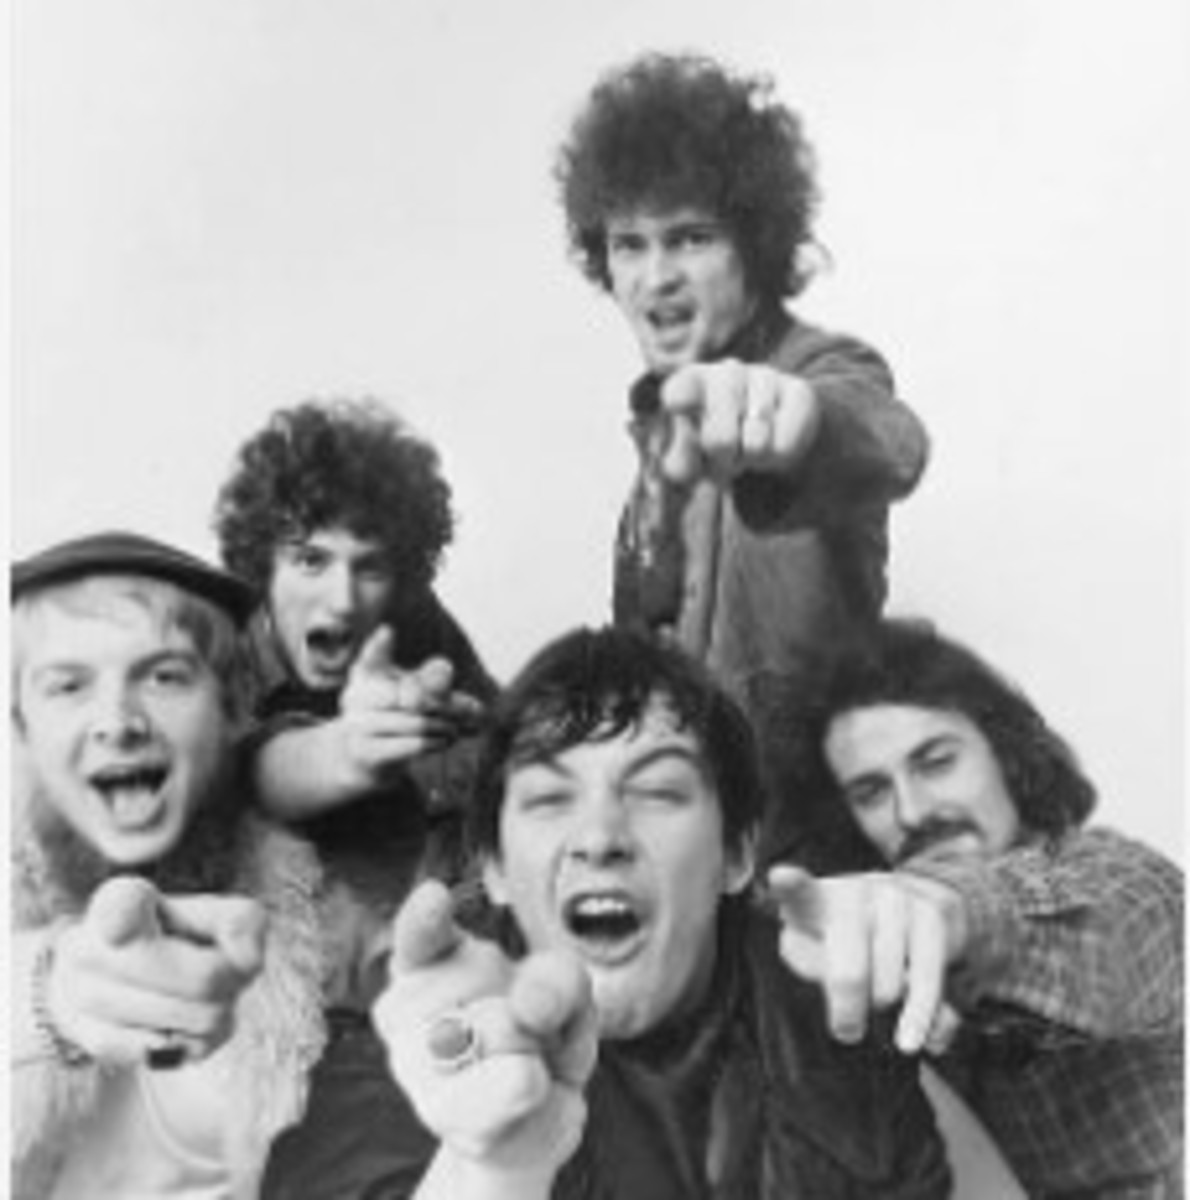 The Animals late 1967-early 1968, left to right, Vic Briggs, Johnny Weider, Eric Burdon, Danny McCulloch, Barry Jenkins, photo by Michael Ochs, Getty Images